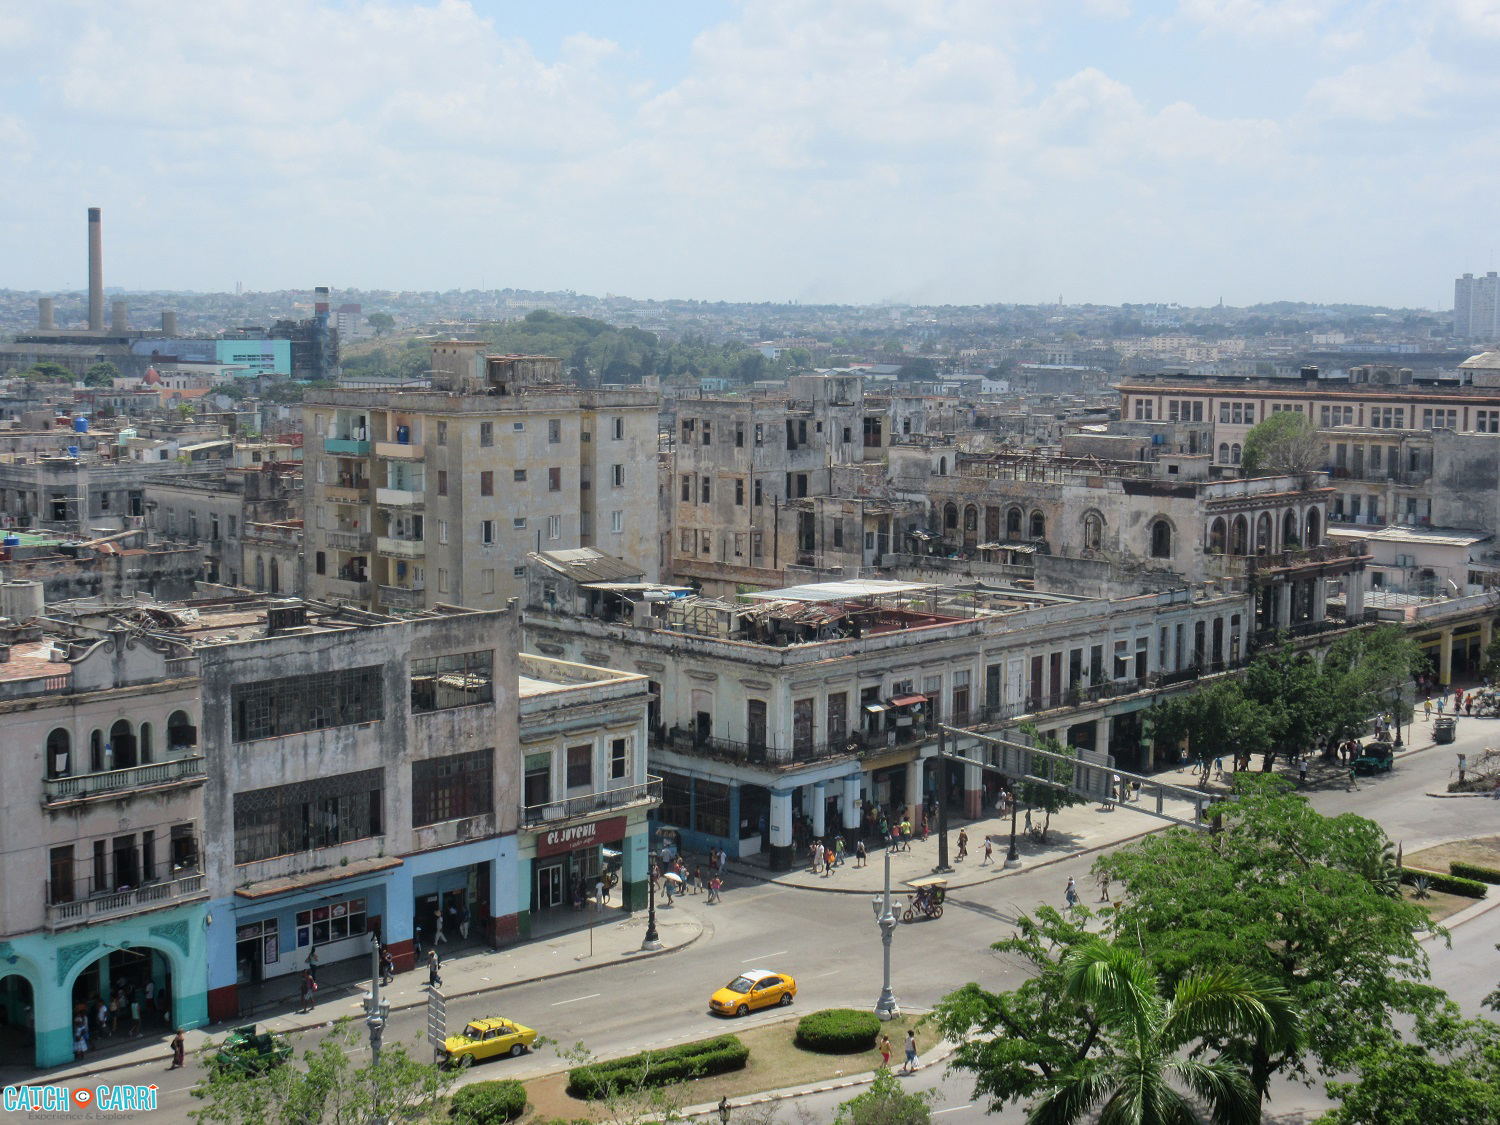 tips for visiting Cuba